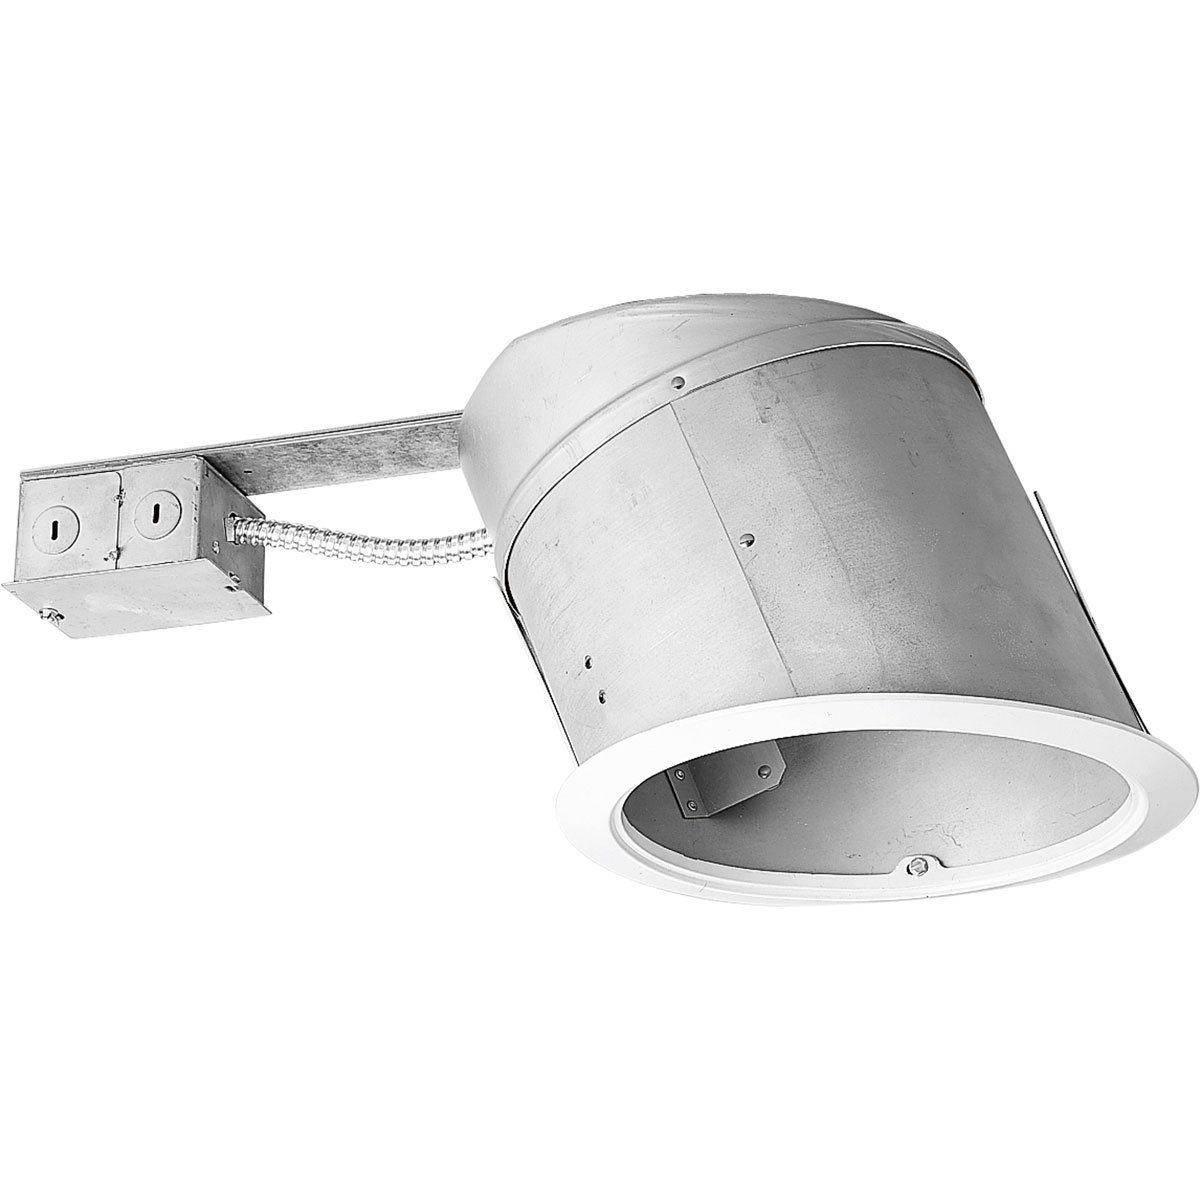 Progress Lighting P245-TG Ic Remodel Housing UL/CUL Listed For Damp Locations and Installed in Ceilings, 1/2-Inch to 1-1/2-Inch Thickness